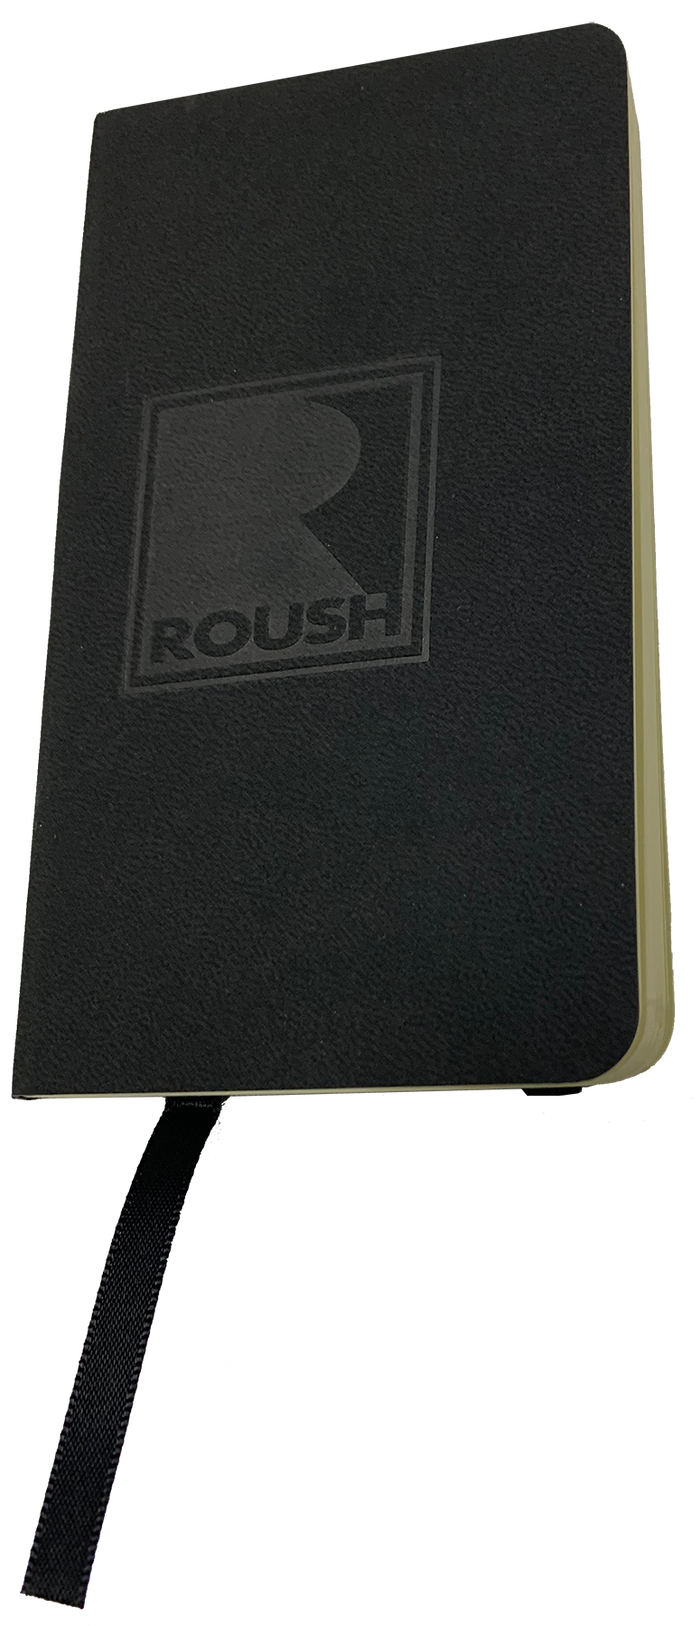 Roush Pocket Soft Bound JournalBook™